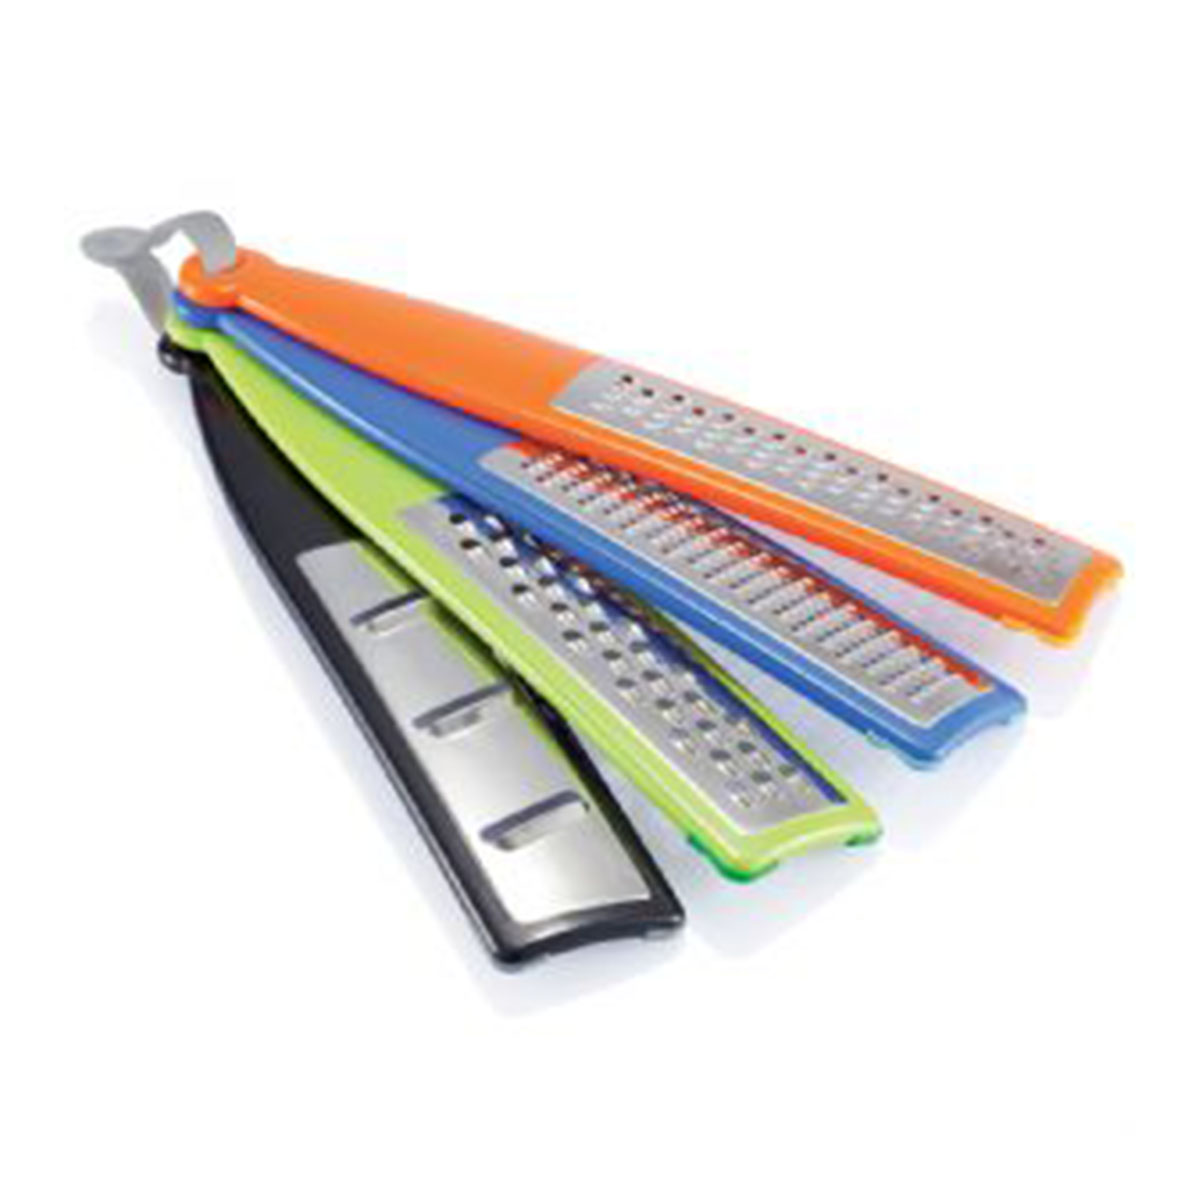 Grating Set-Orange with Silver, Blue with Silver,Green with Silver,Black with Silver.